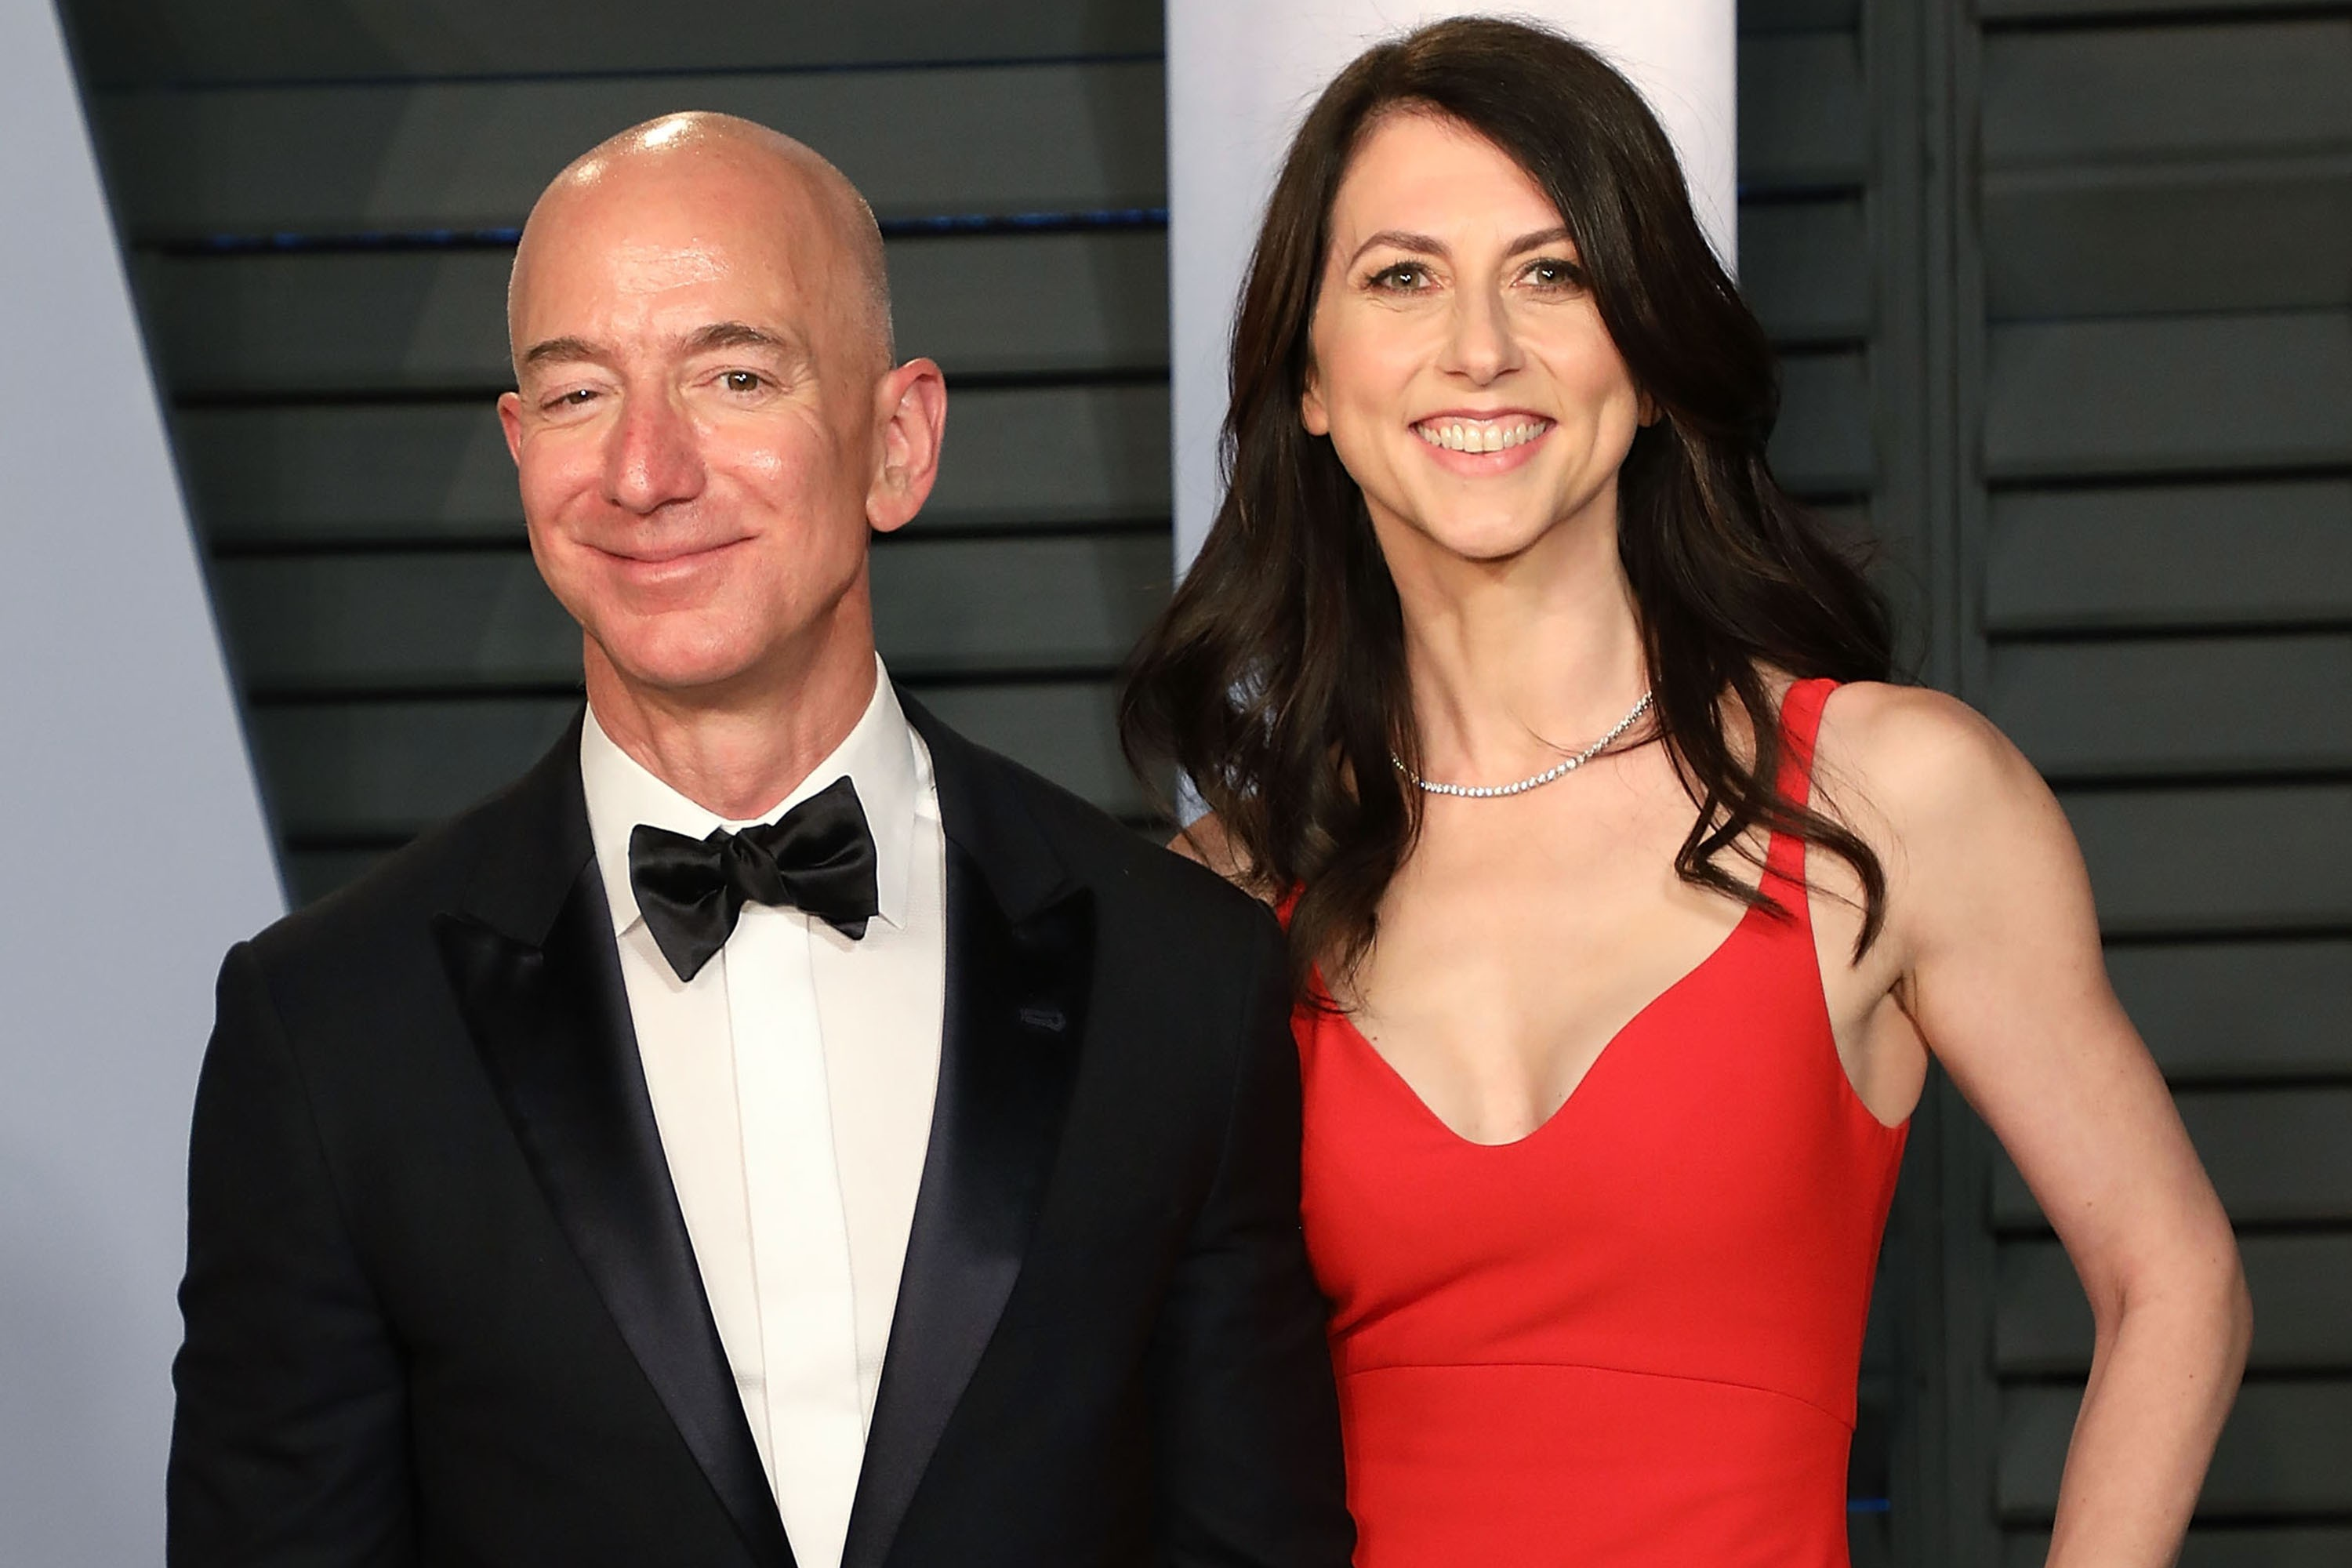 Jeff e Mackenzie Bezos (Foto: Getty Images)